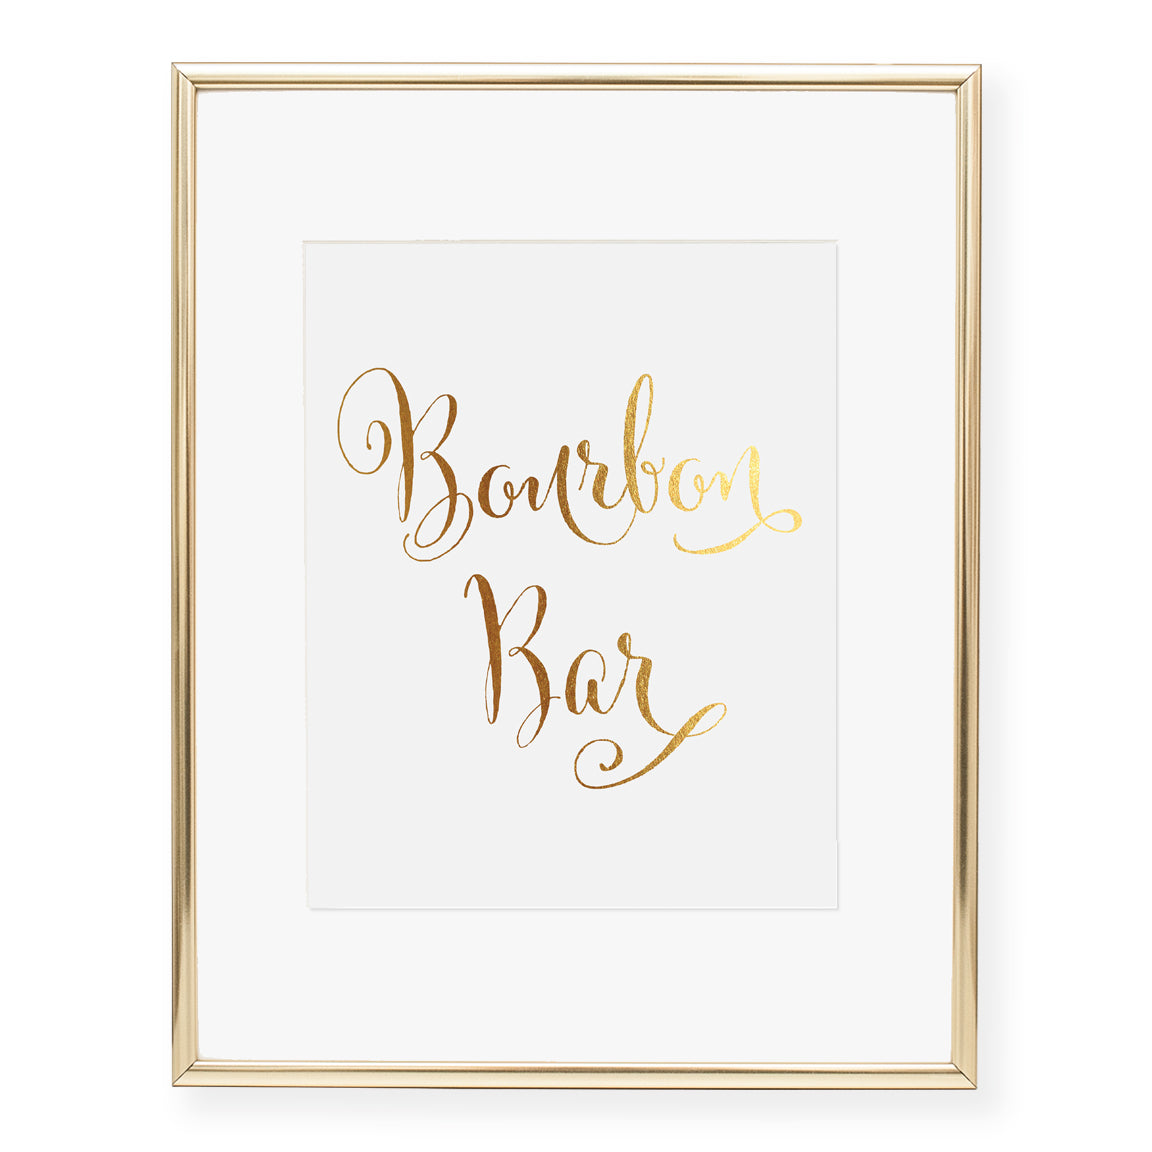 Bourbon Bar Foil Art Print